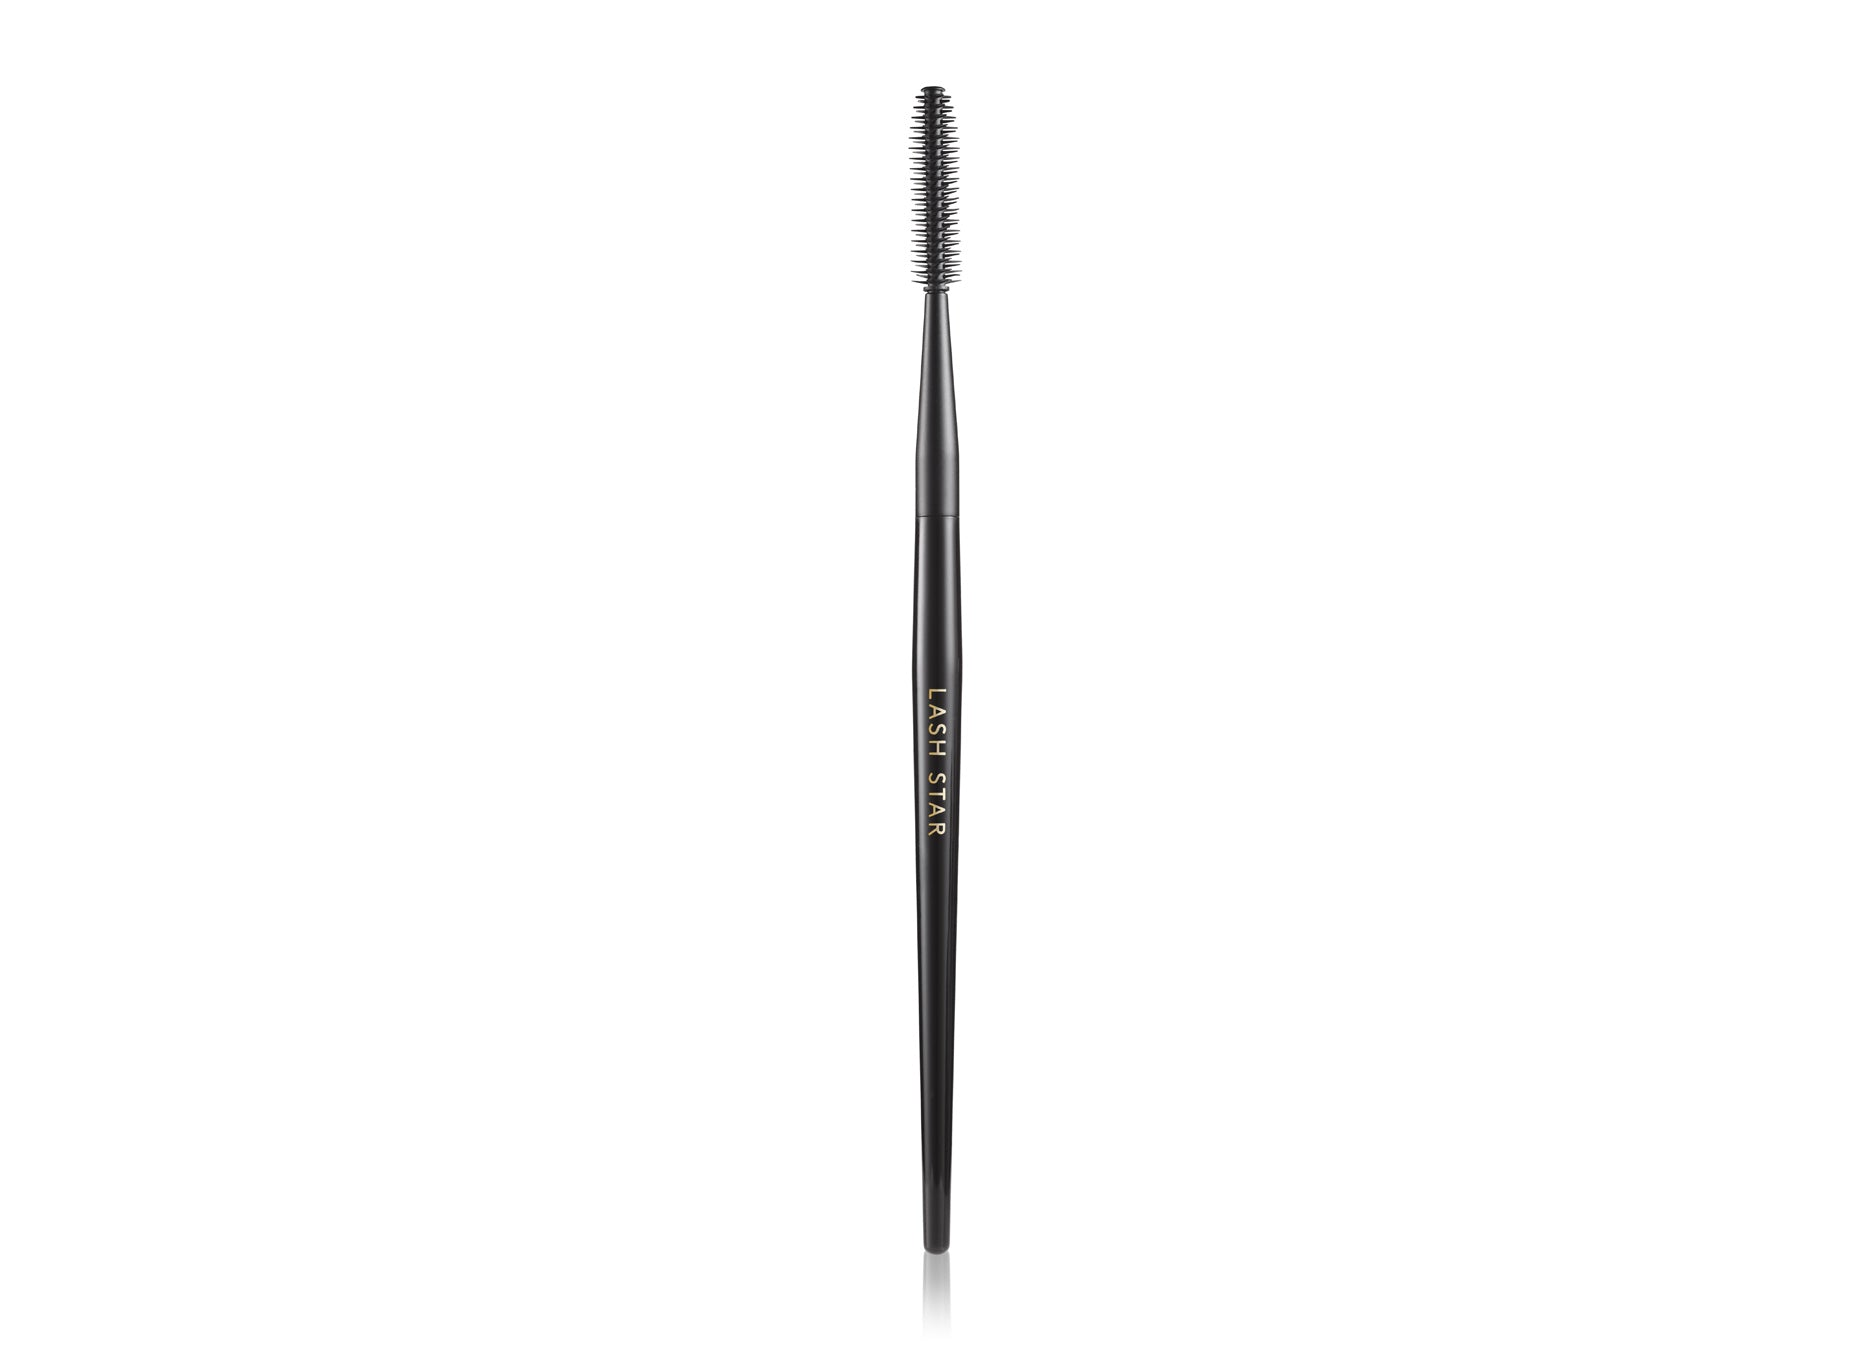 Lash Brush from Lash Star Beauty